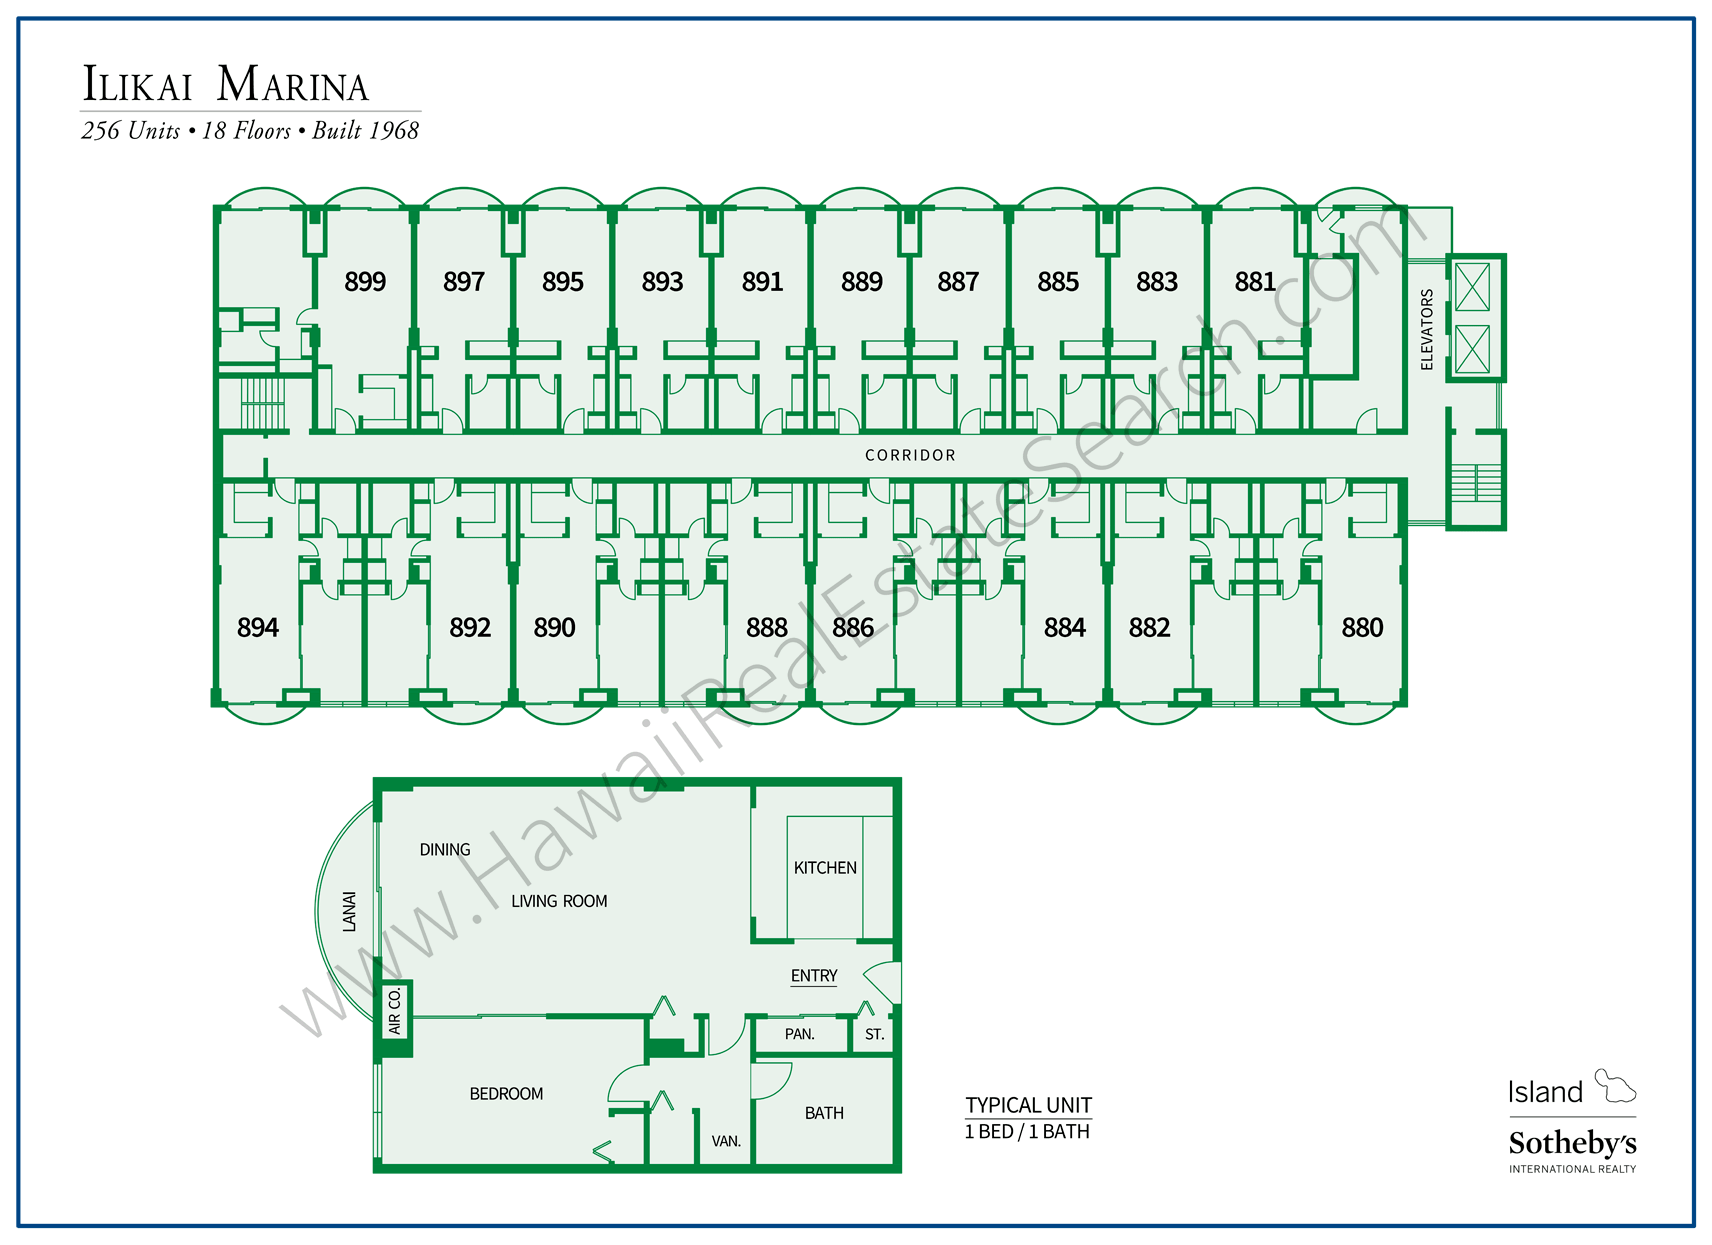 Ilikai Marina Map and Floor Plan